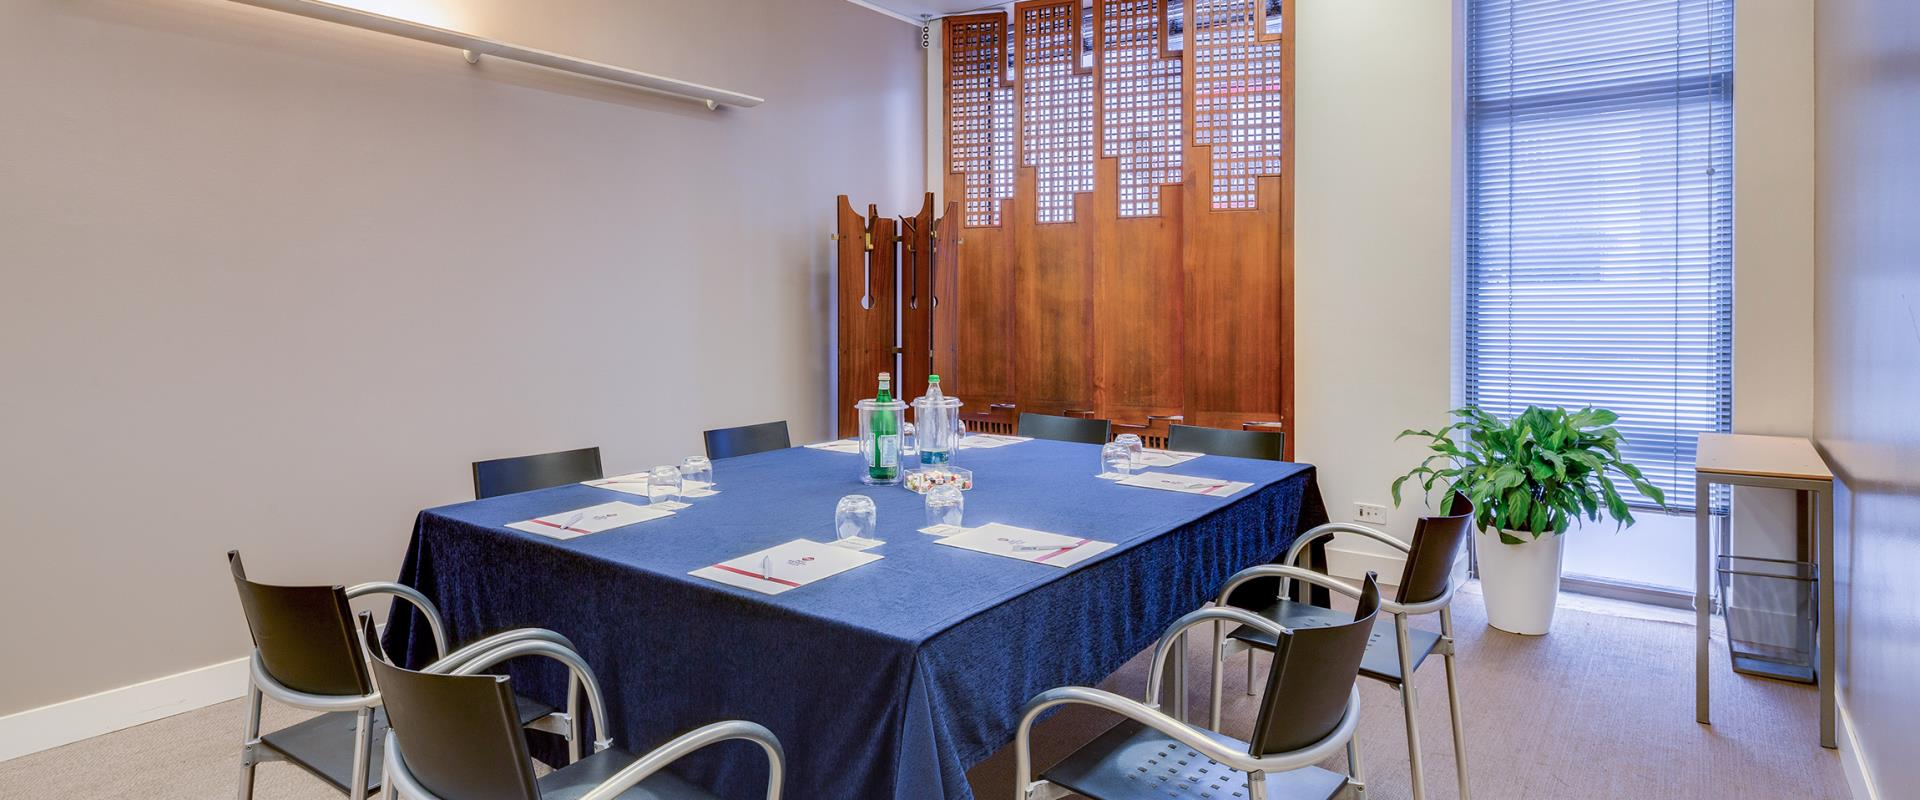 Plan your meeting near Venice with BW Plus Hotel Bologna in Mestre.